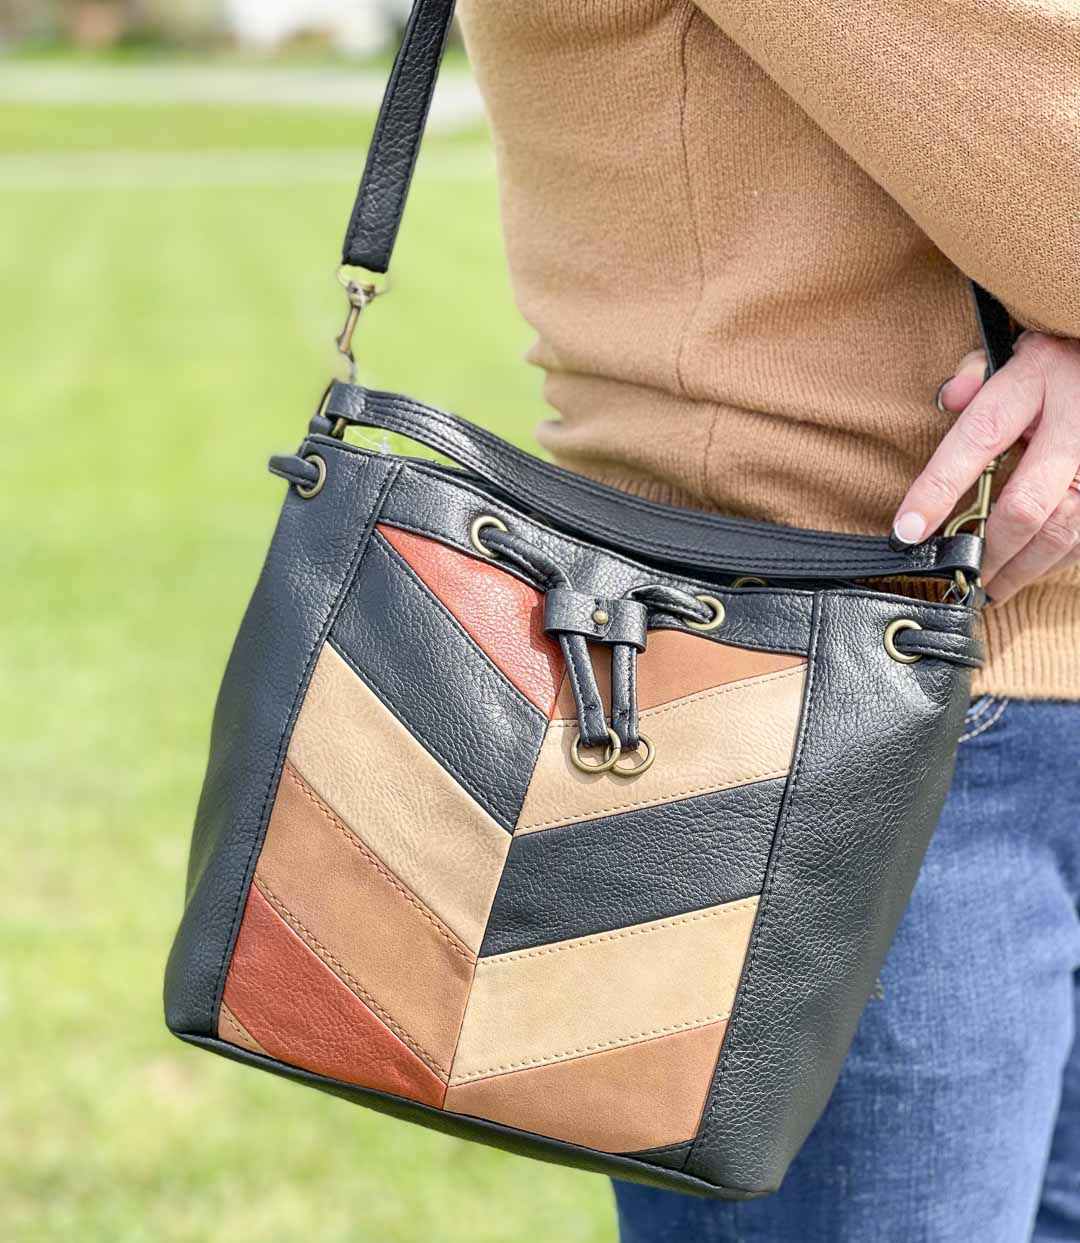 Over 40 Fashion Blogger, Tania Stephens, is showing her recent Walmart haul including this faux leather patchwork bag